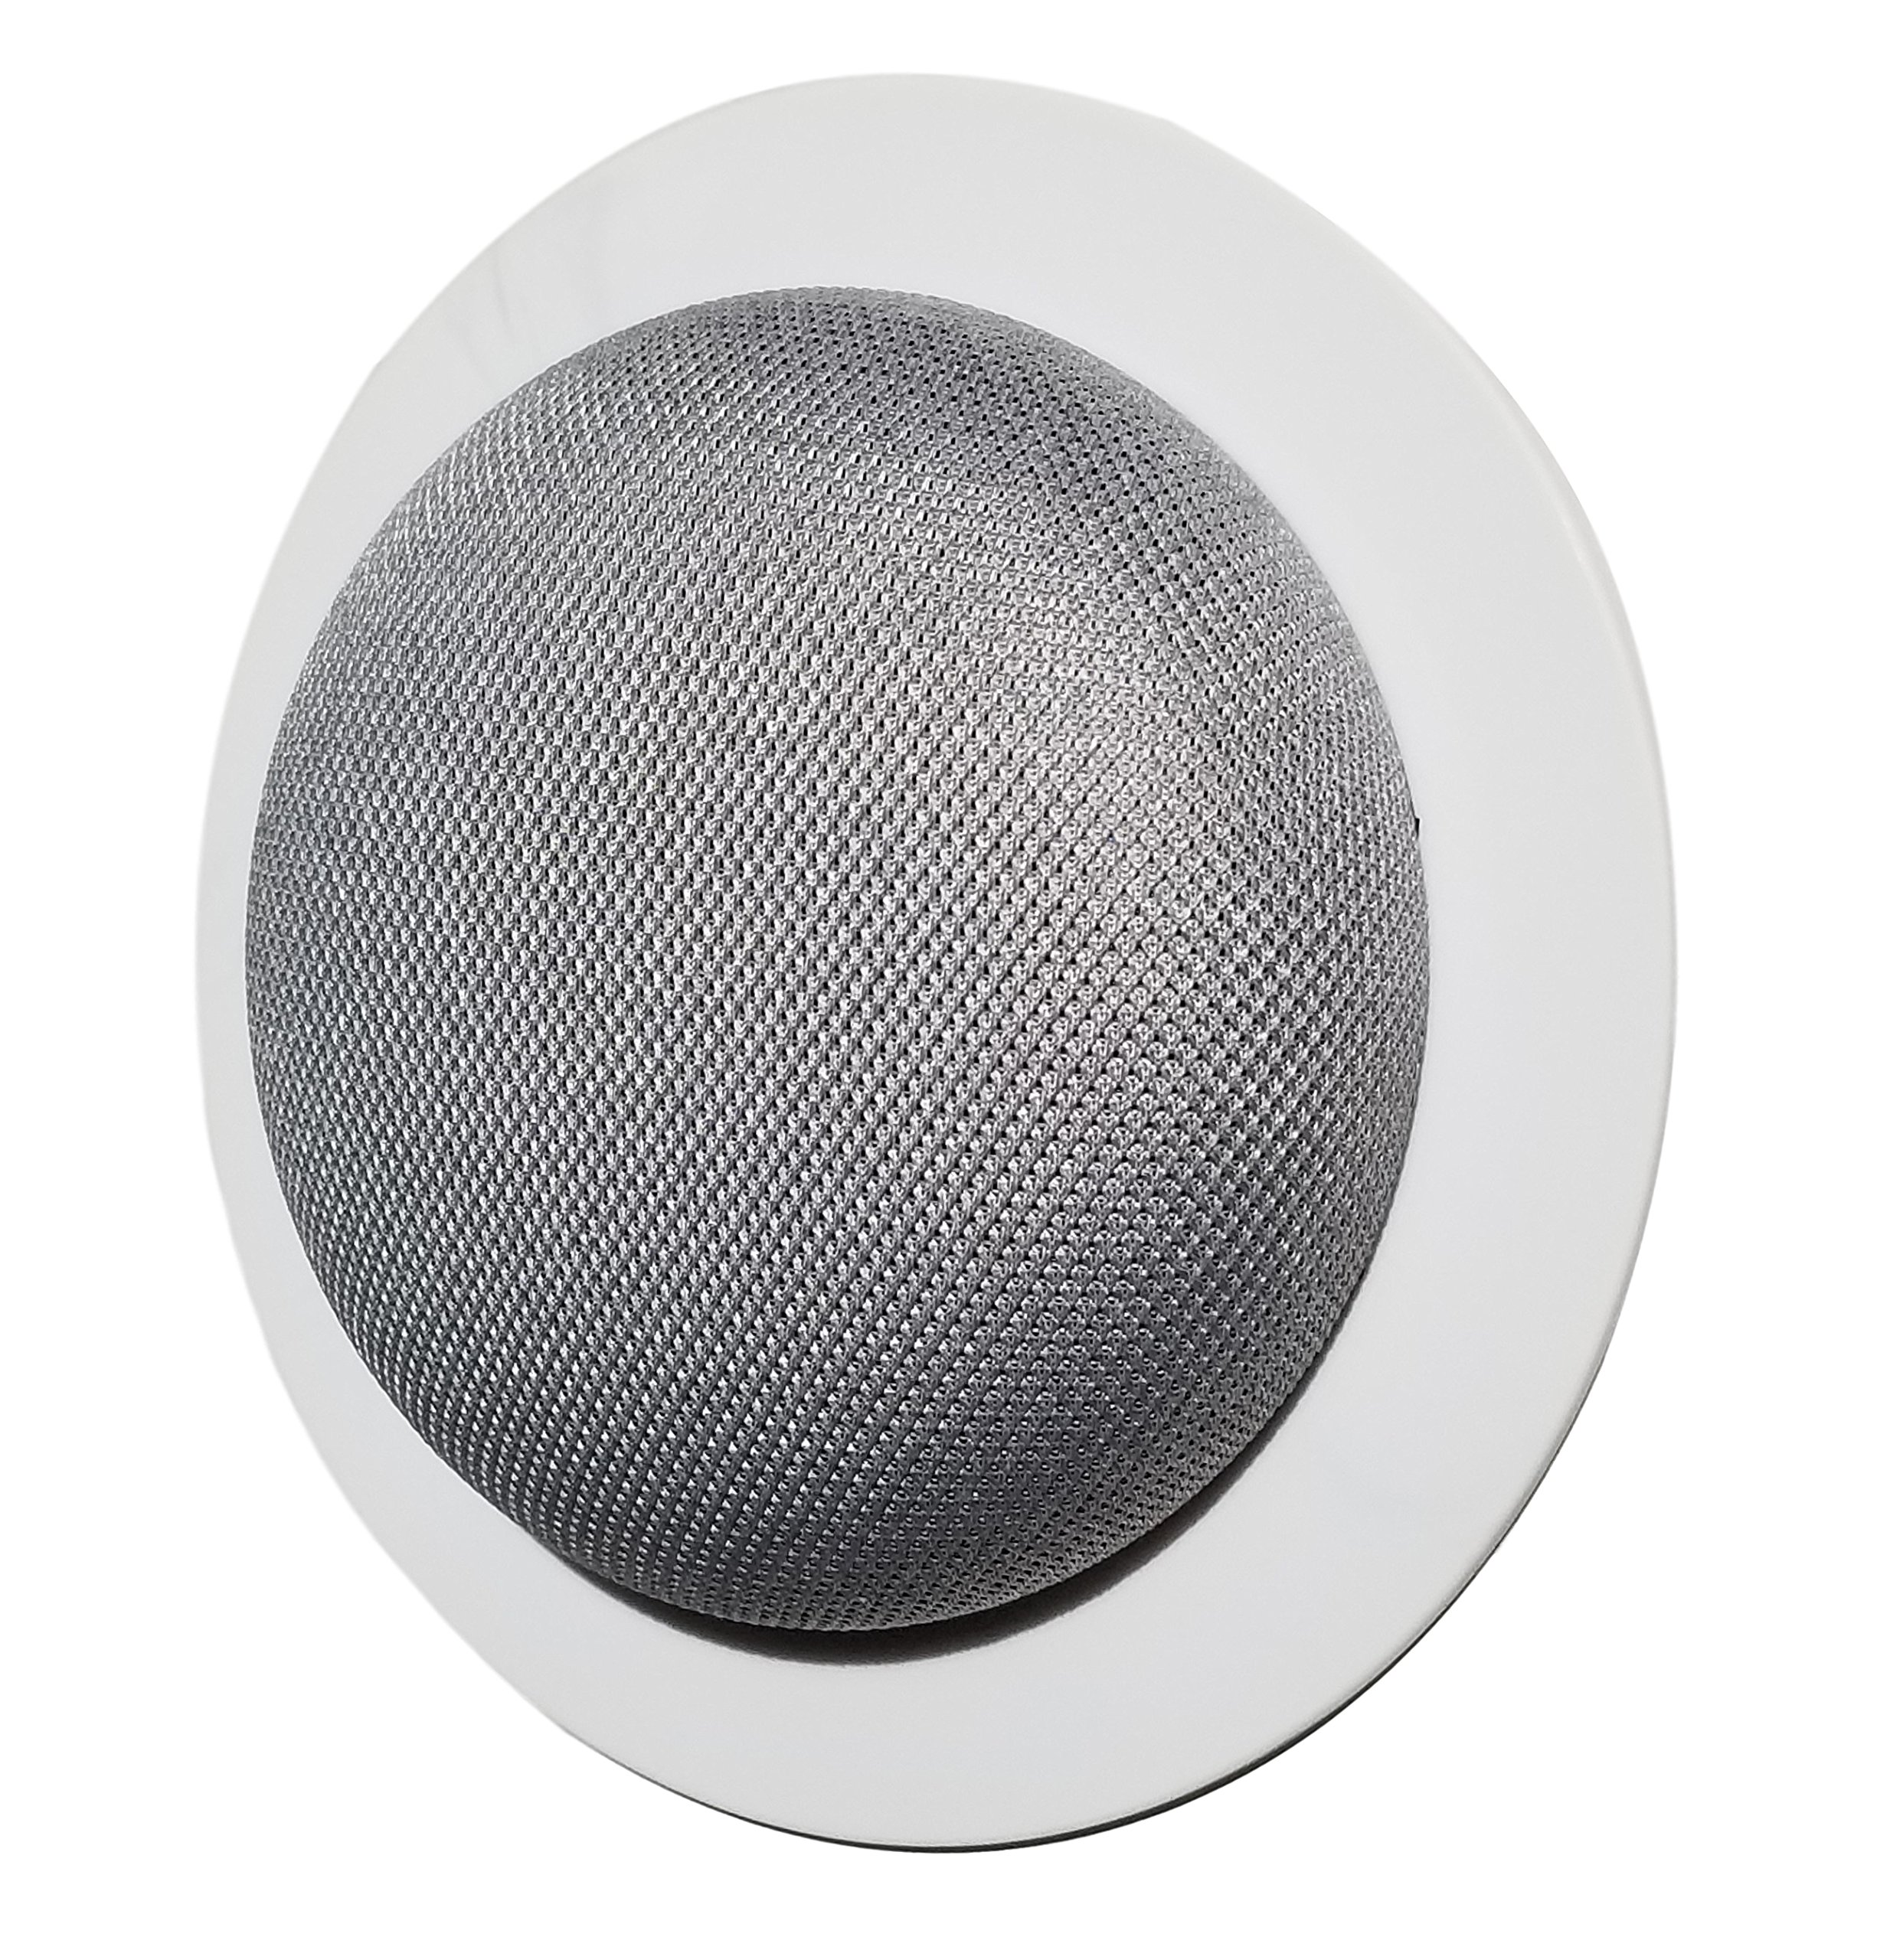 The Simple Built-in Google Home Mini Mount: Custom Built-in Wall or Ceiling Mount Holder for Home Mini Voice Assistants by Google - Designed in The USA by Mount Genie (5-Pack)